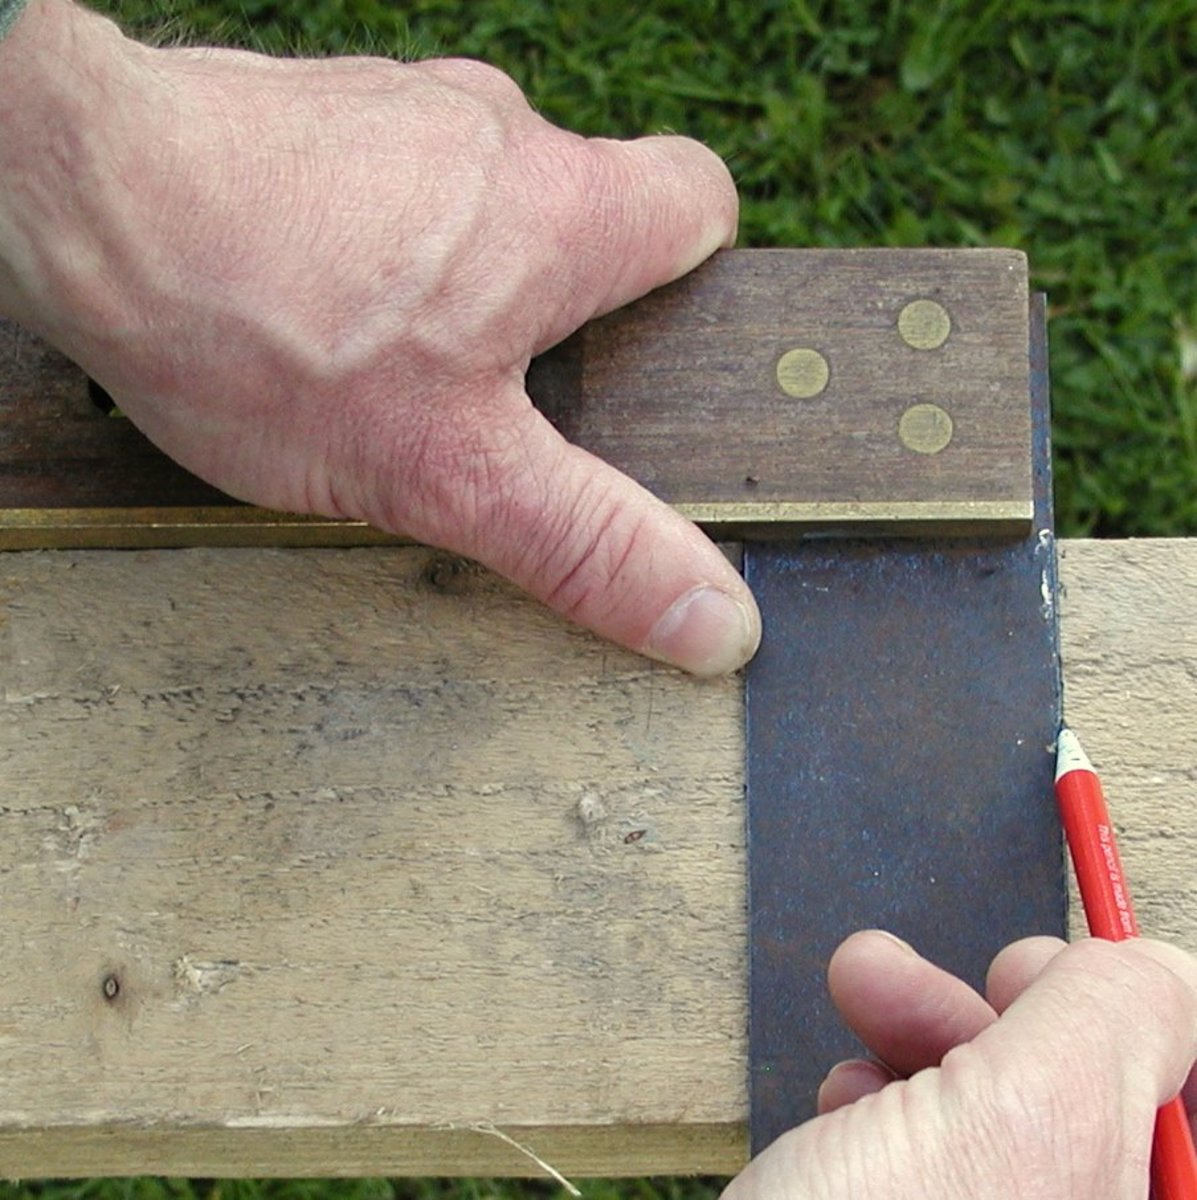 Using a square to mark a 90 degree line as a guide for cutting.